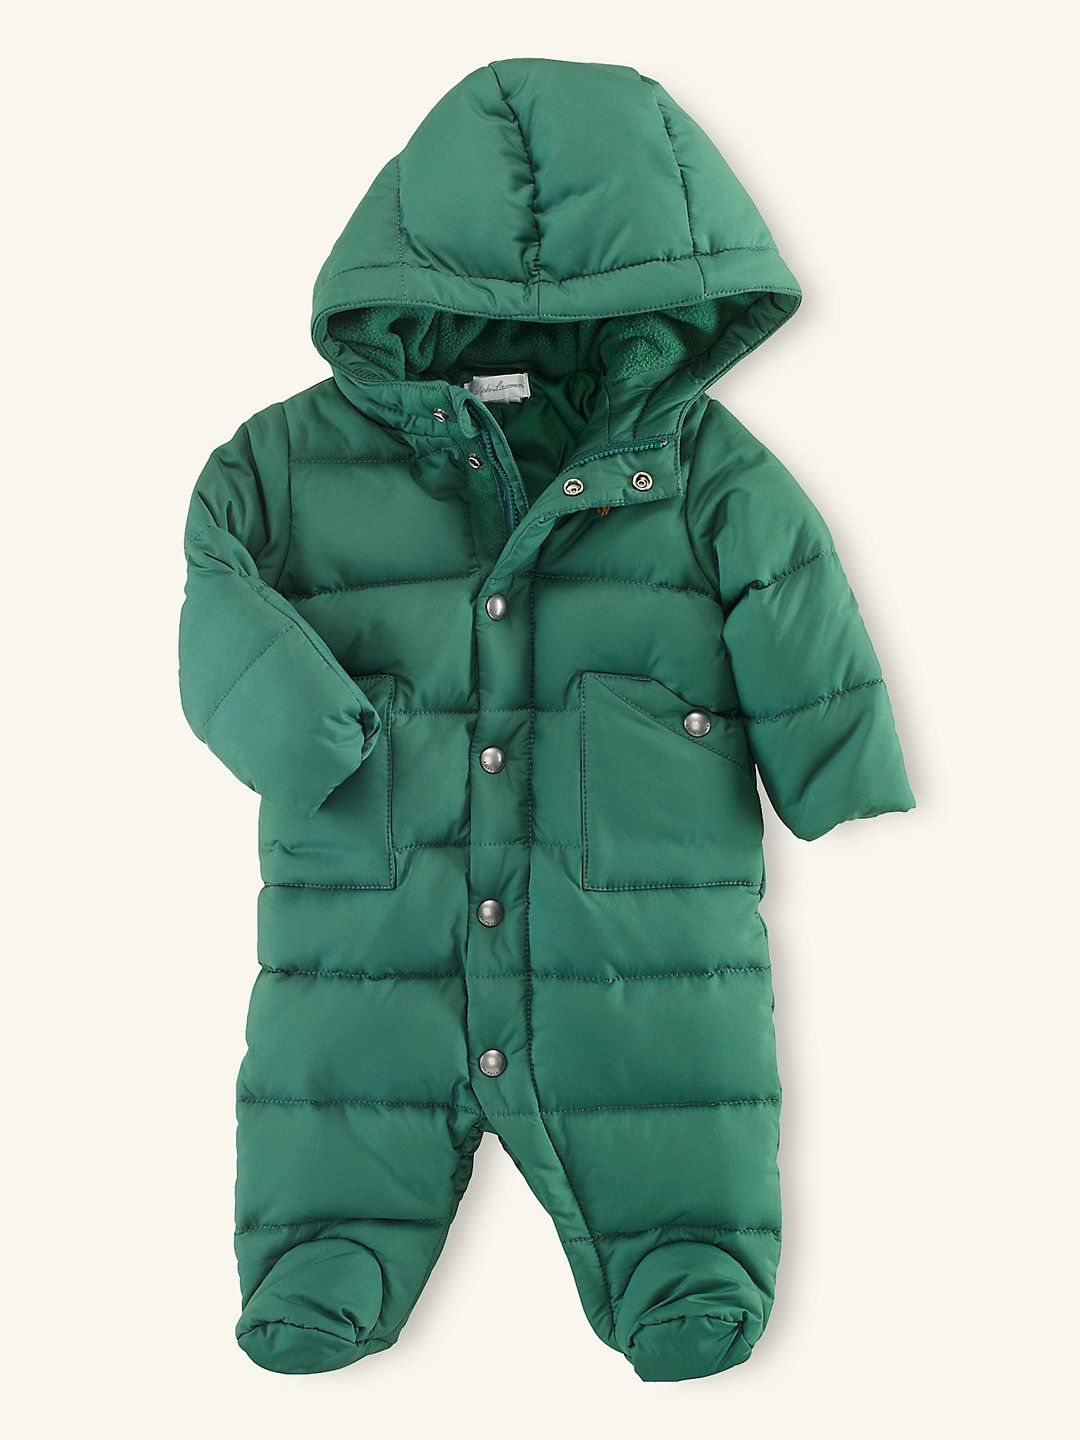 f3c74f534 Down Snowsuit - Sale Layette Boy (Newborn-9M) - RalphLauren.com ...